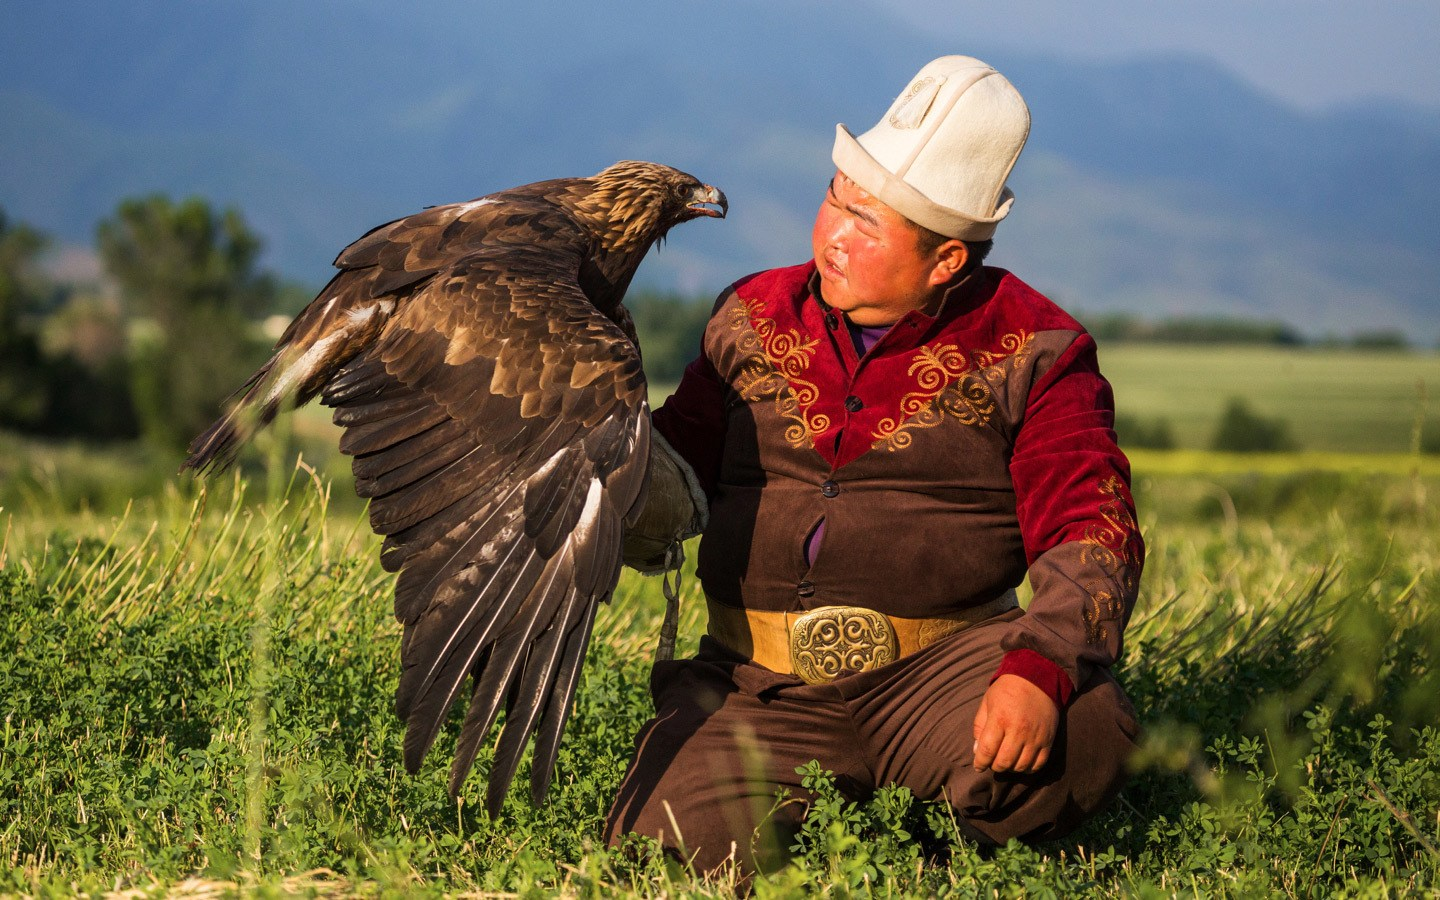 Man with falcon in Kyrgyzstan